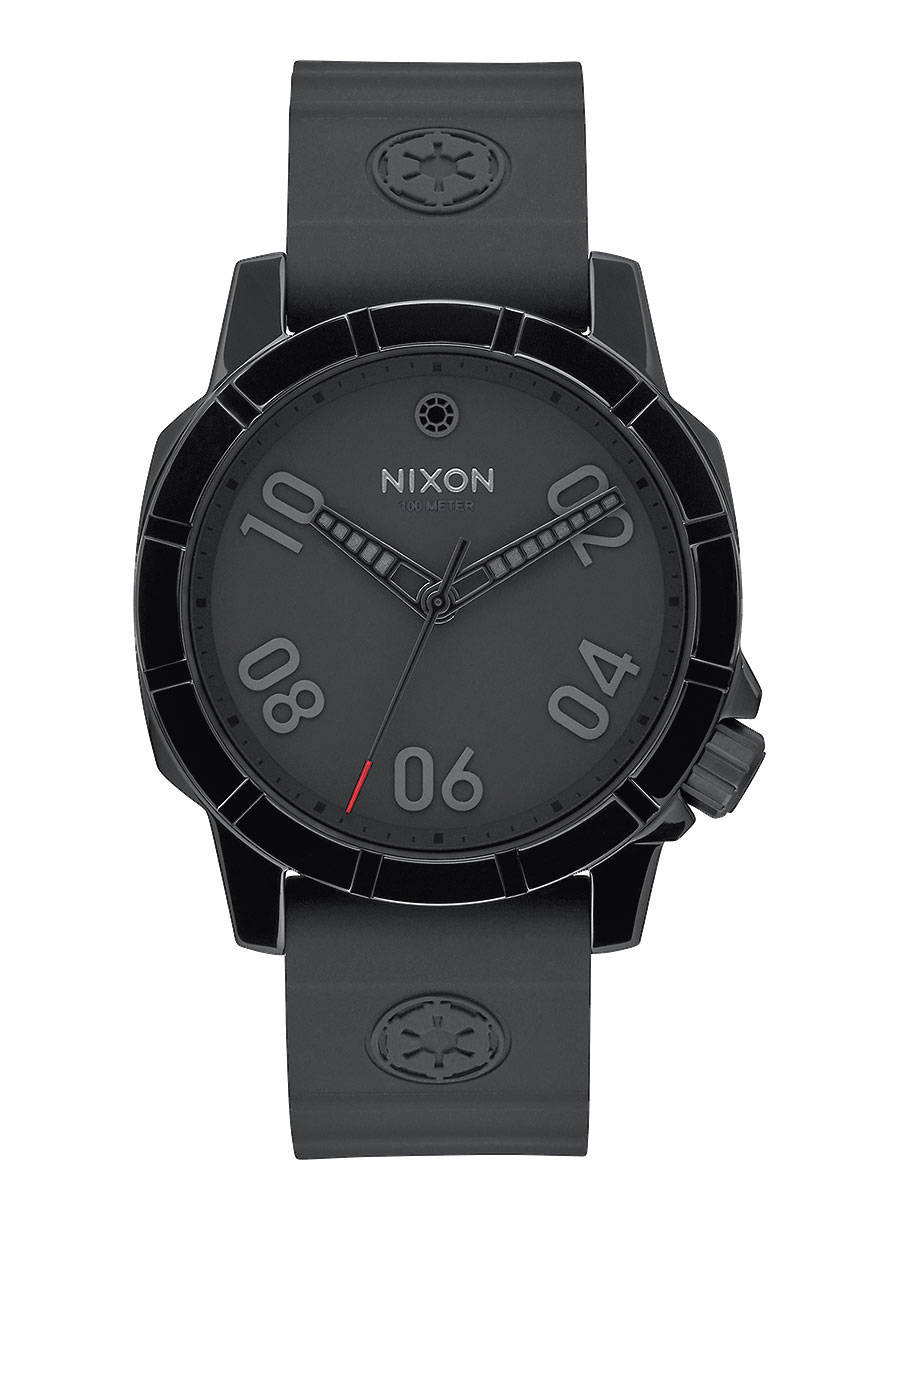 Star Wars x Nixon Capsule Collection